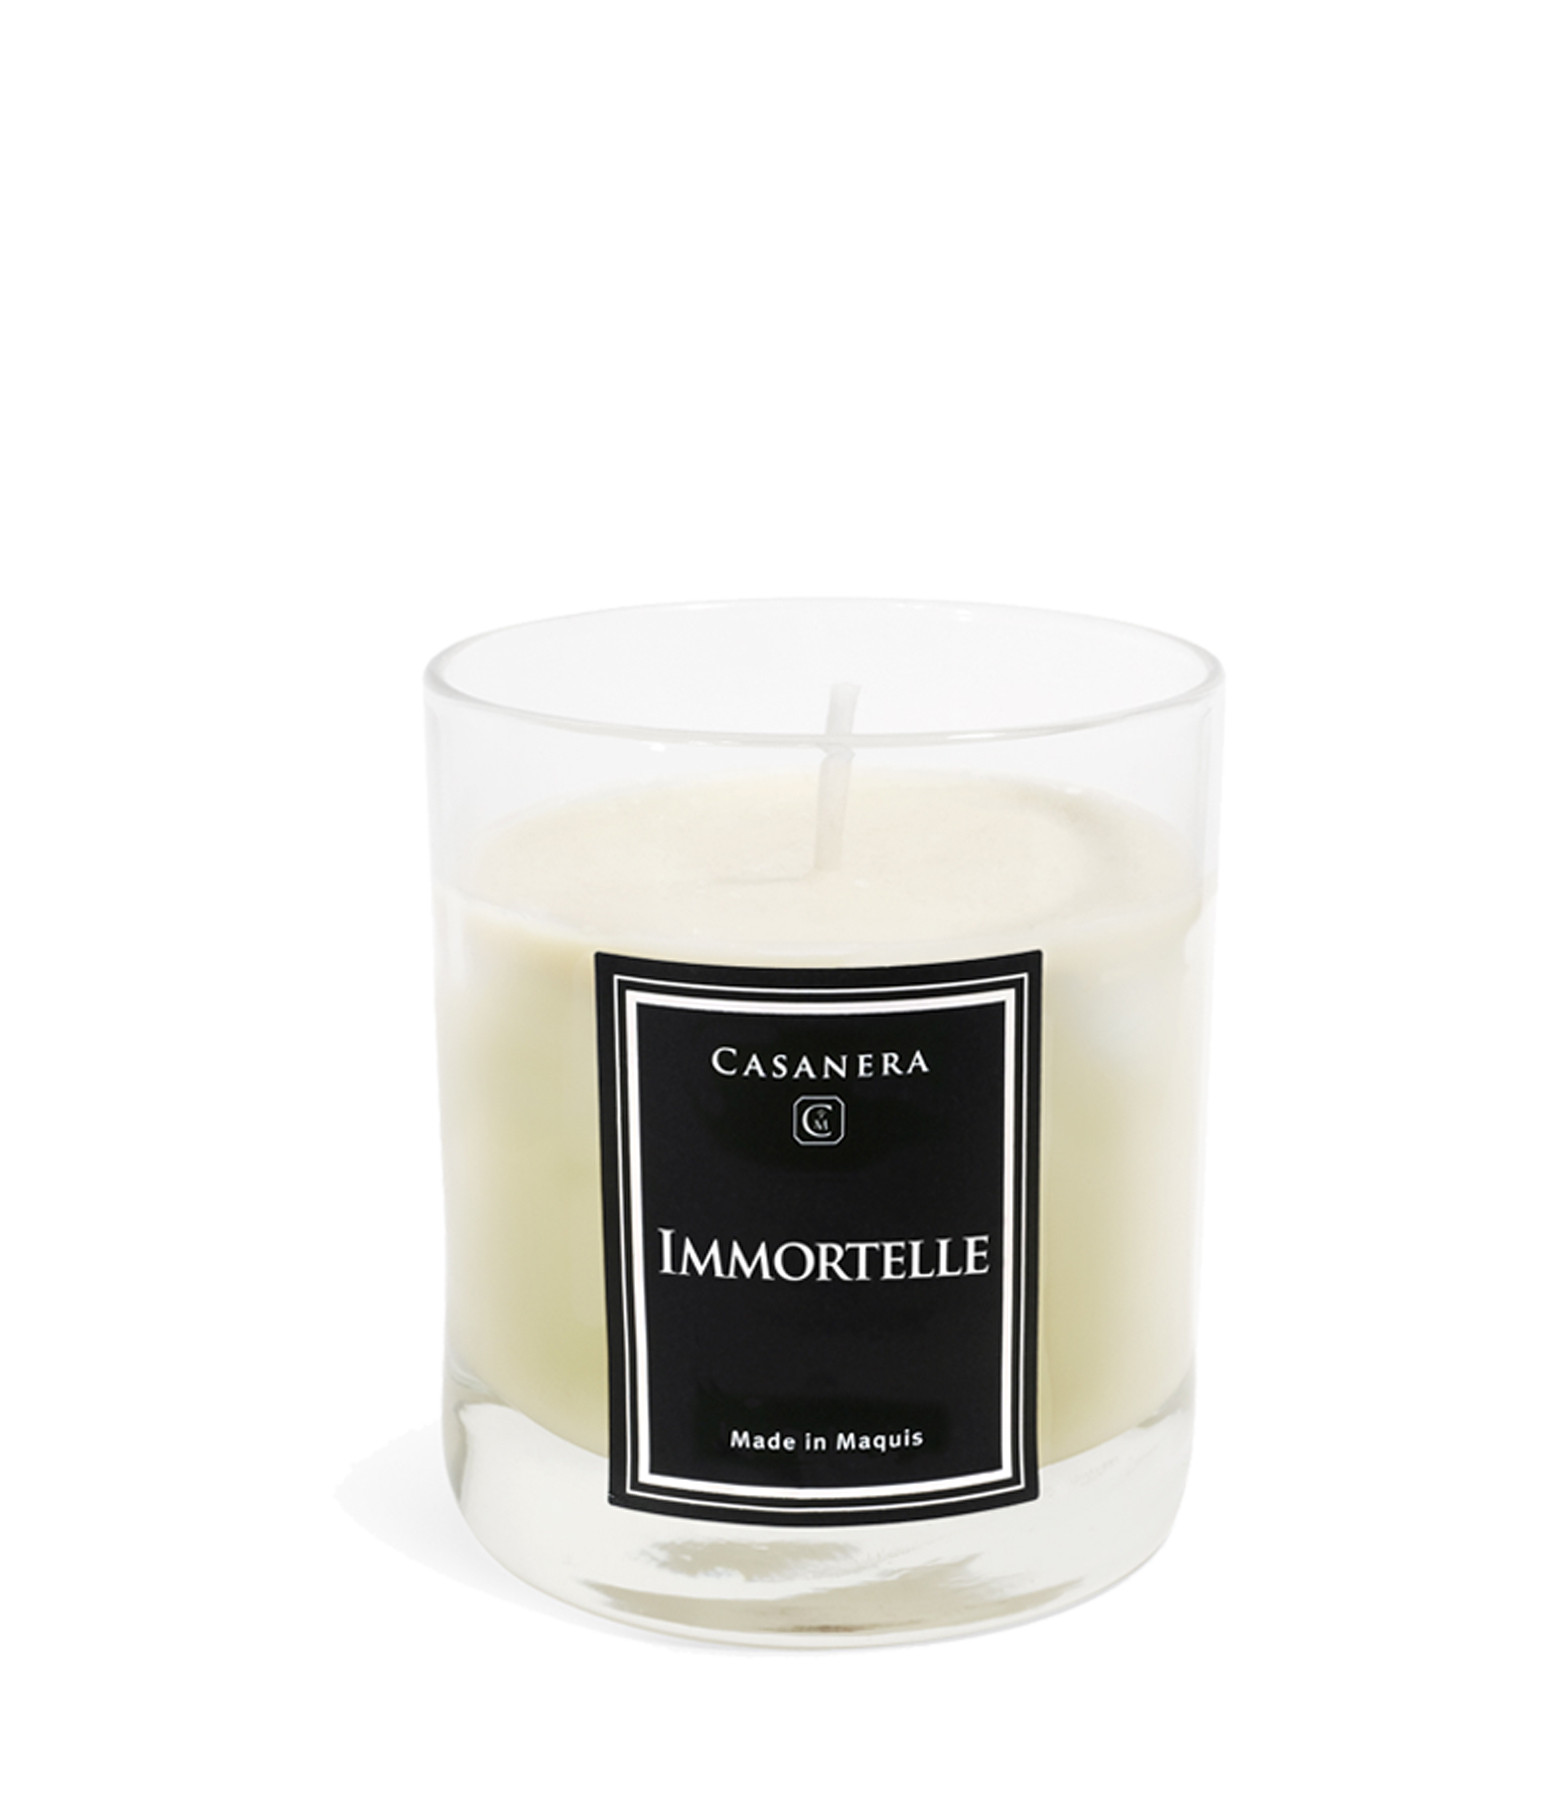 CASANERA - Bougie Immortelle 250g